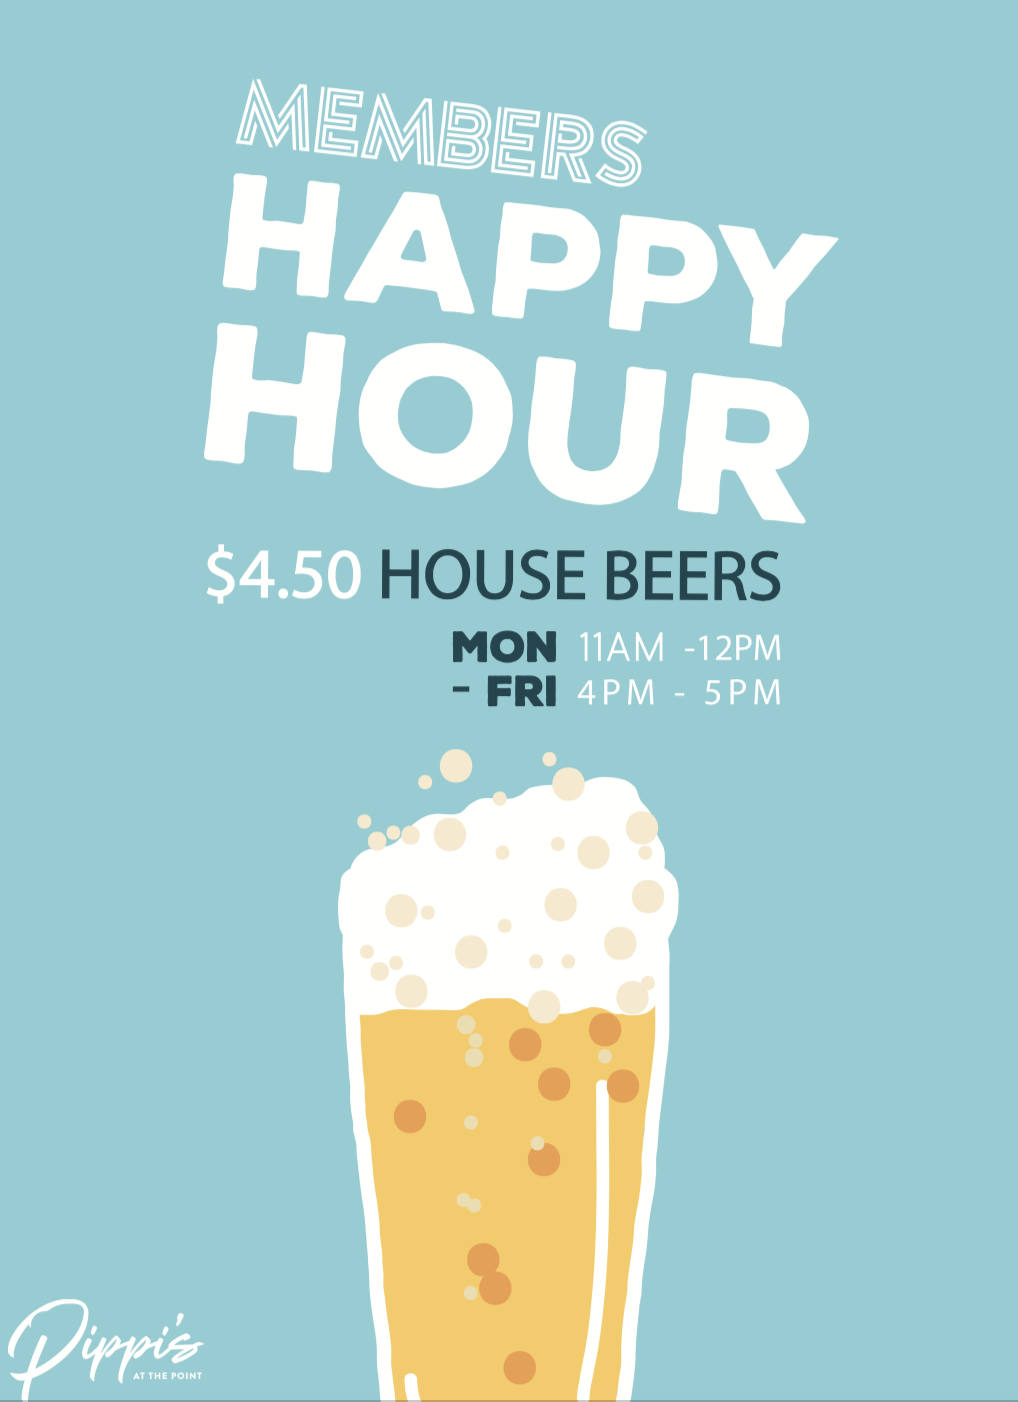 HAPPY HOUR POSTER - PIPPIS